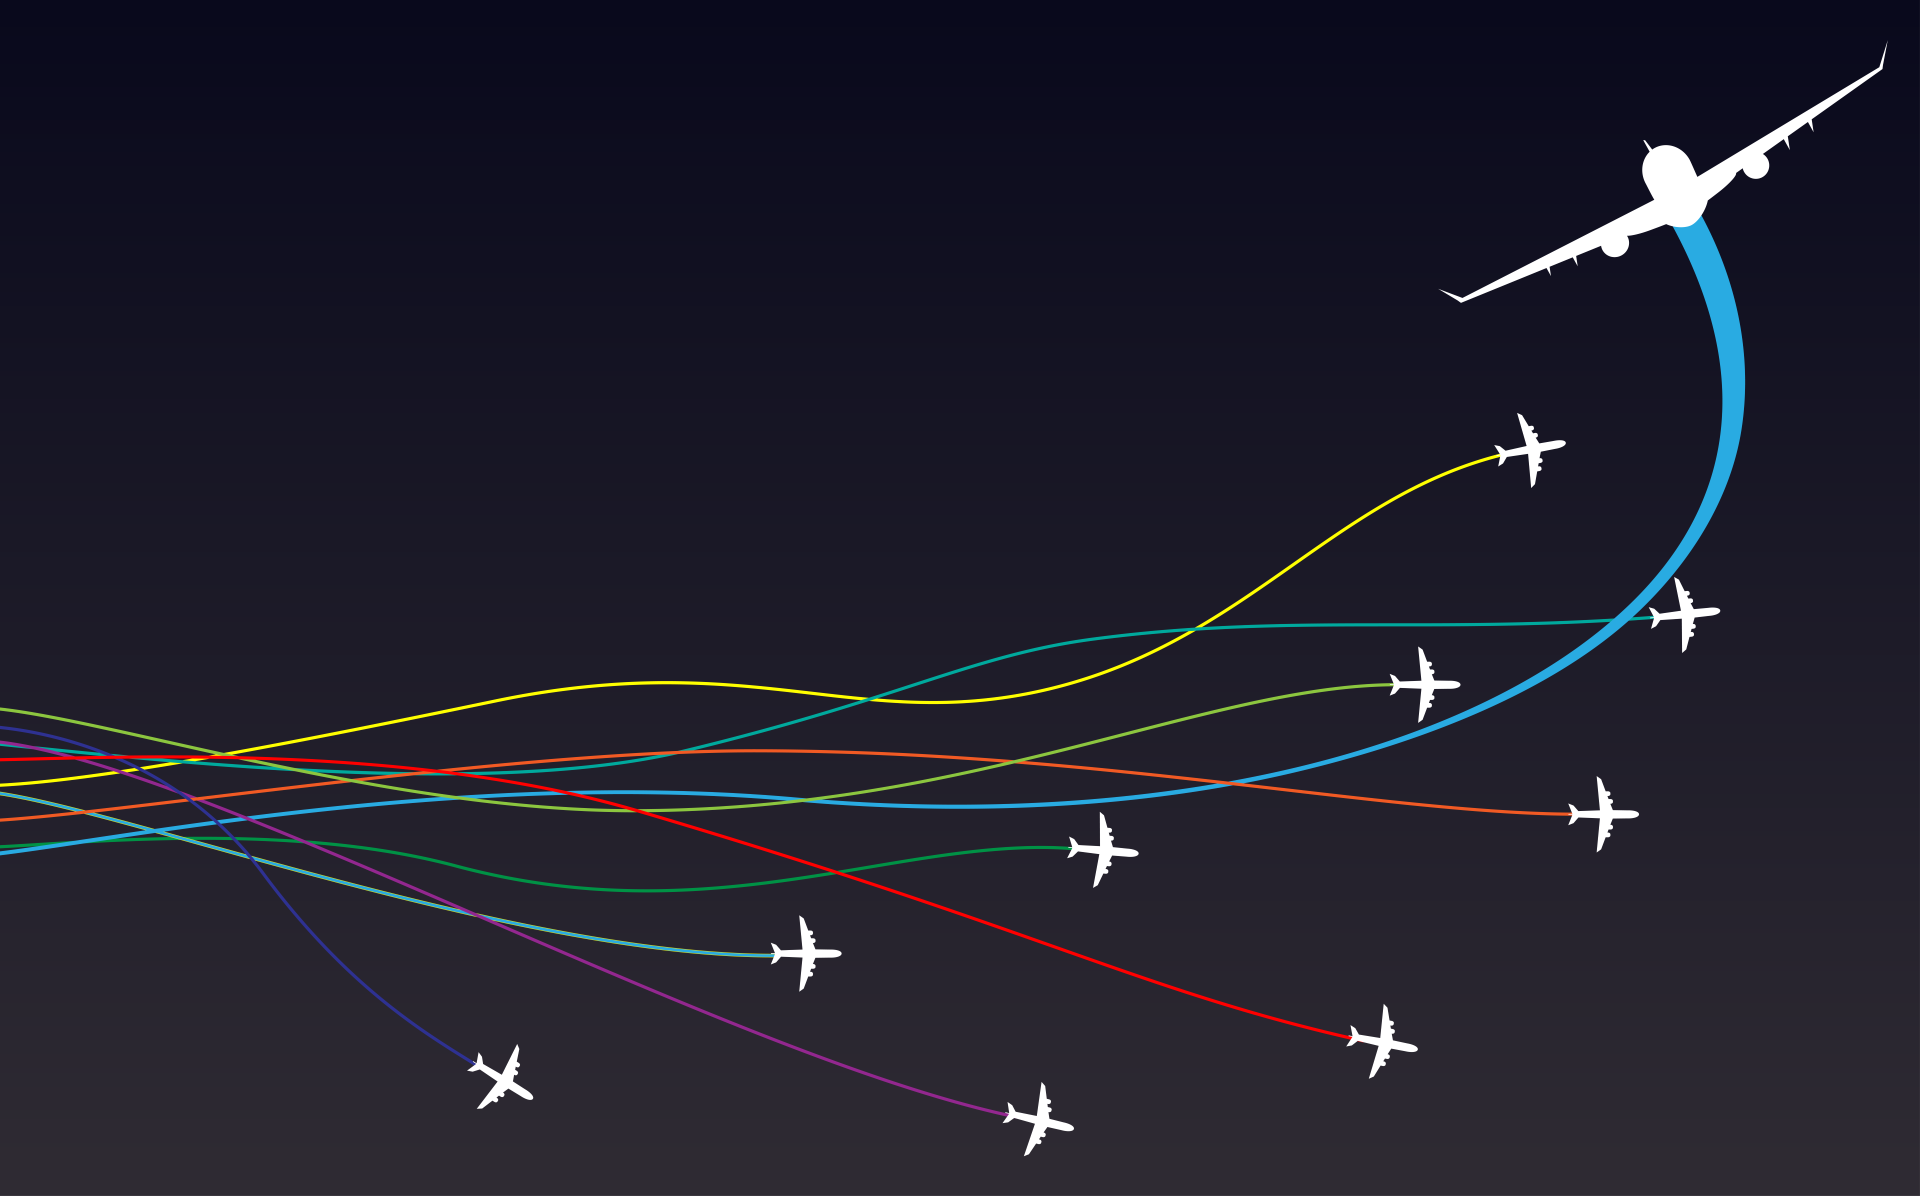 Illustration of multiple passenger jets with different colored jet trails.